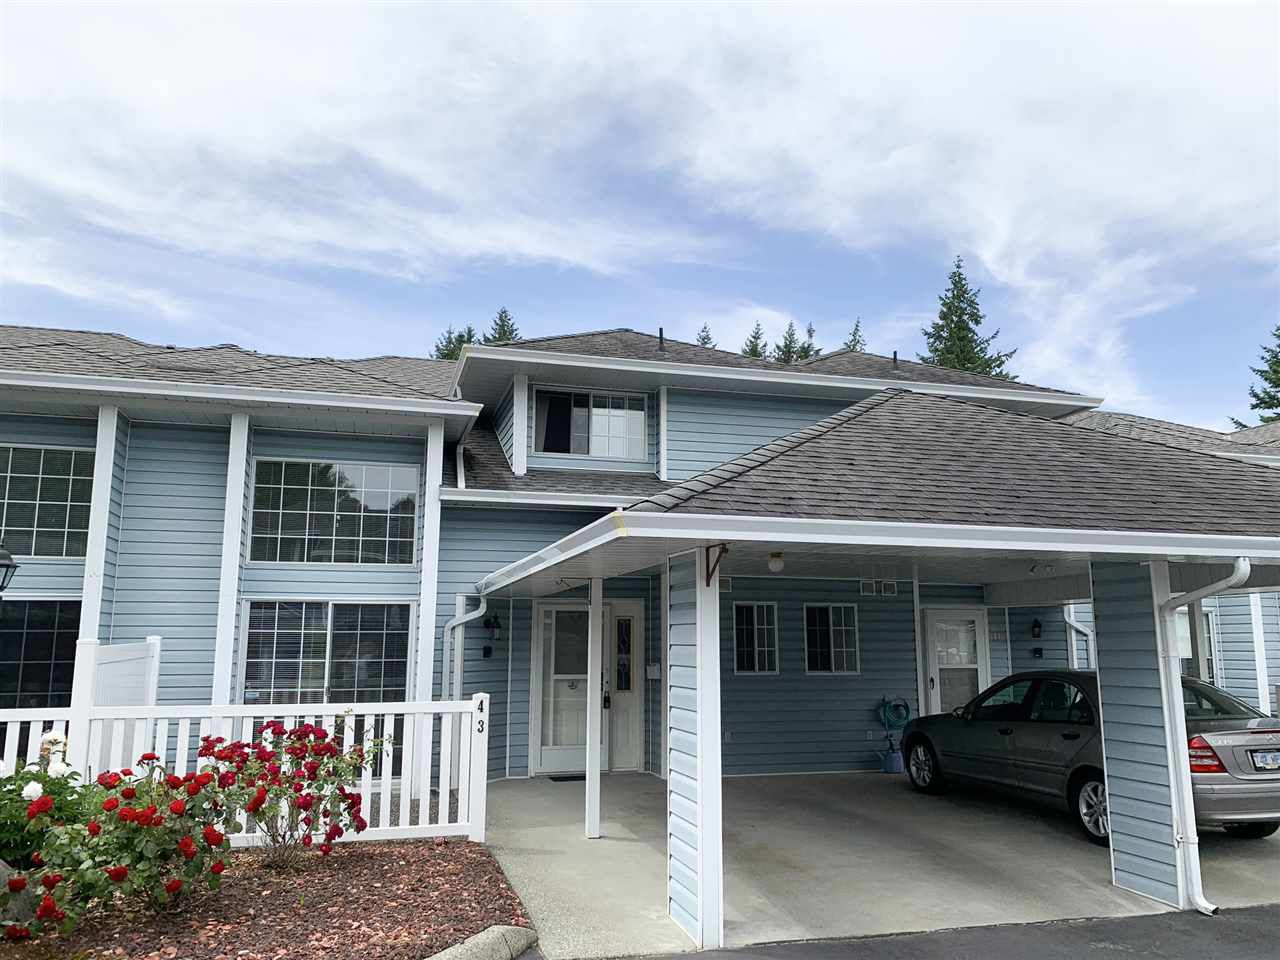 """Main Photo: 43 34899 OLD CLAYBURN Road in Abbotsford: Abbotsford East Townhouse for sale in """"Crown Point Villas"""" : MLS®# R2373675"""